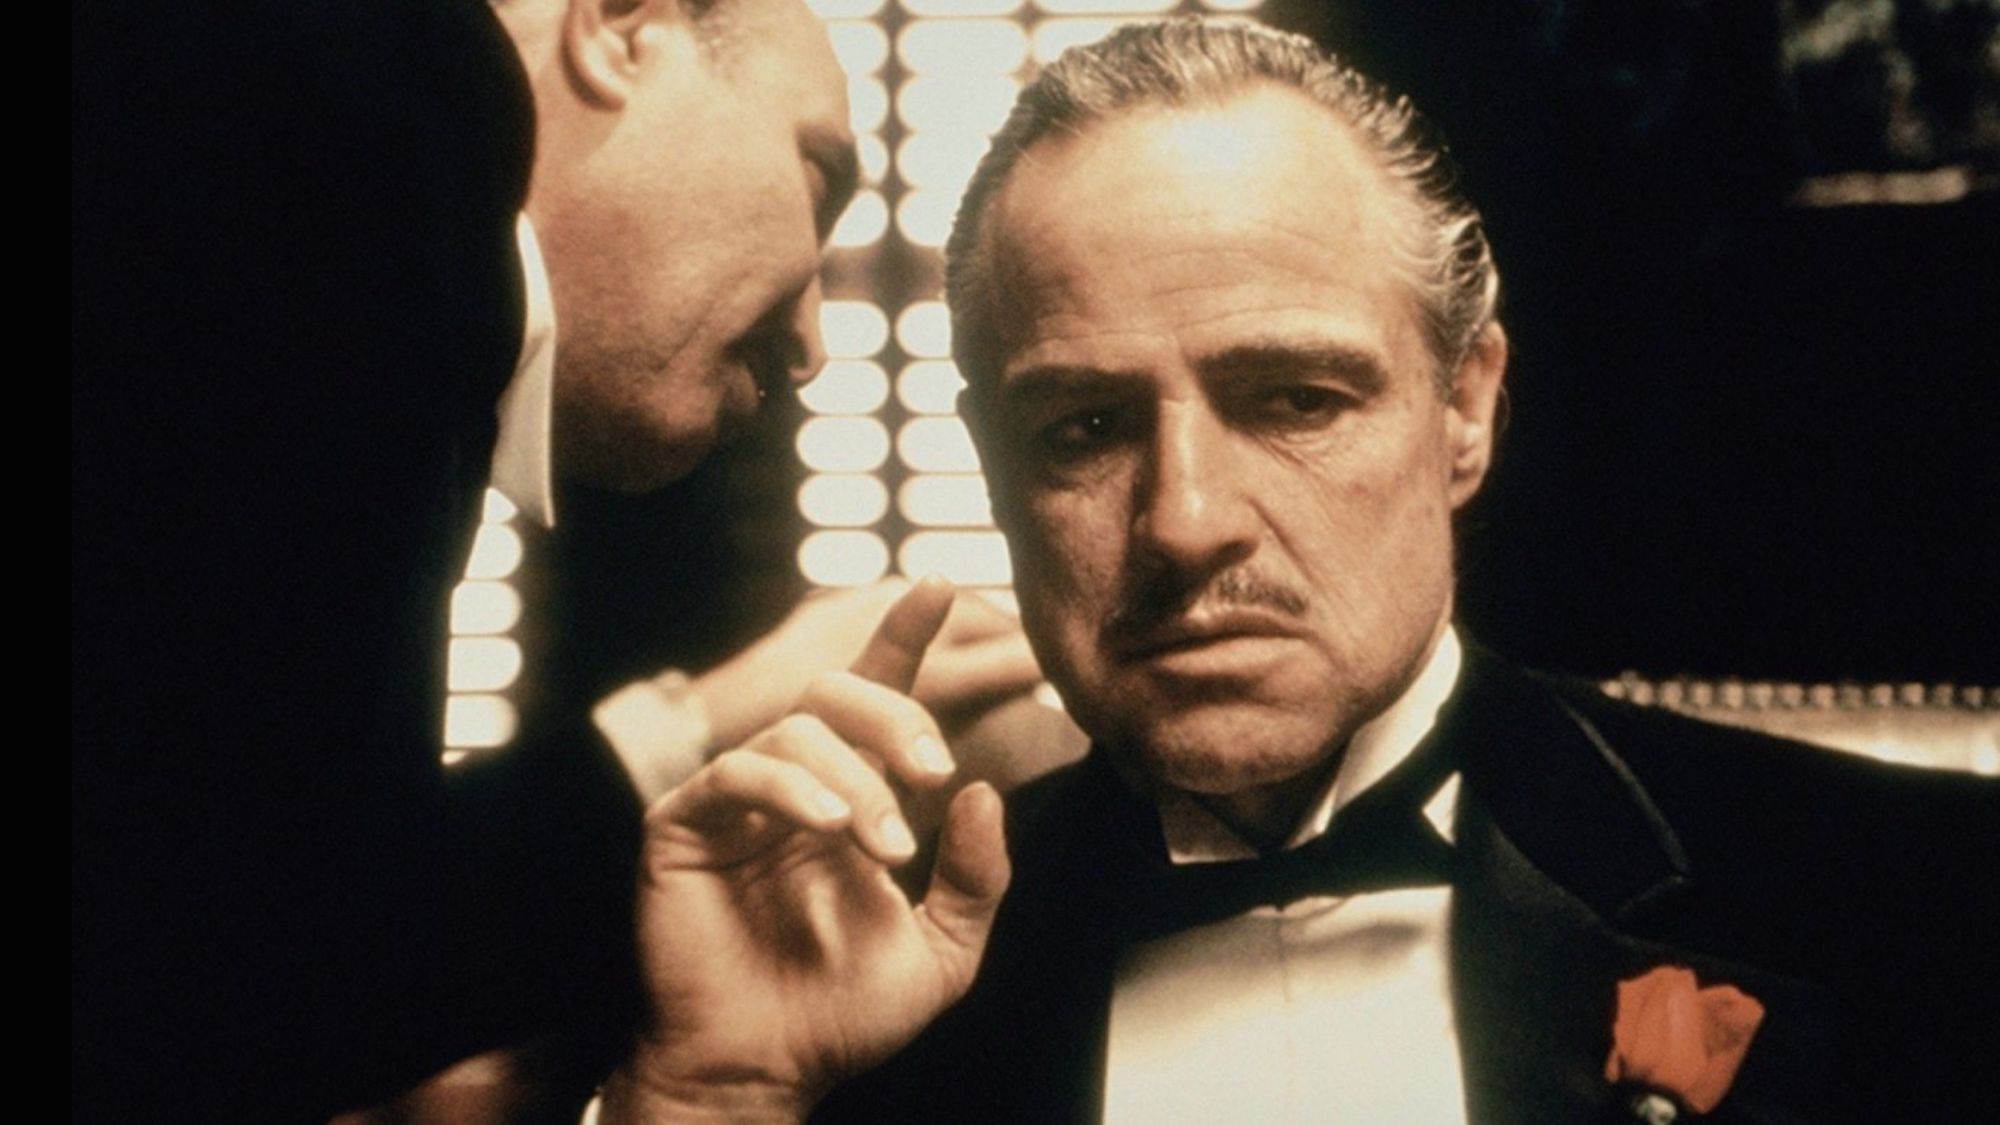 15 Surprising Facts About The Godfather   Mental Floss